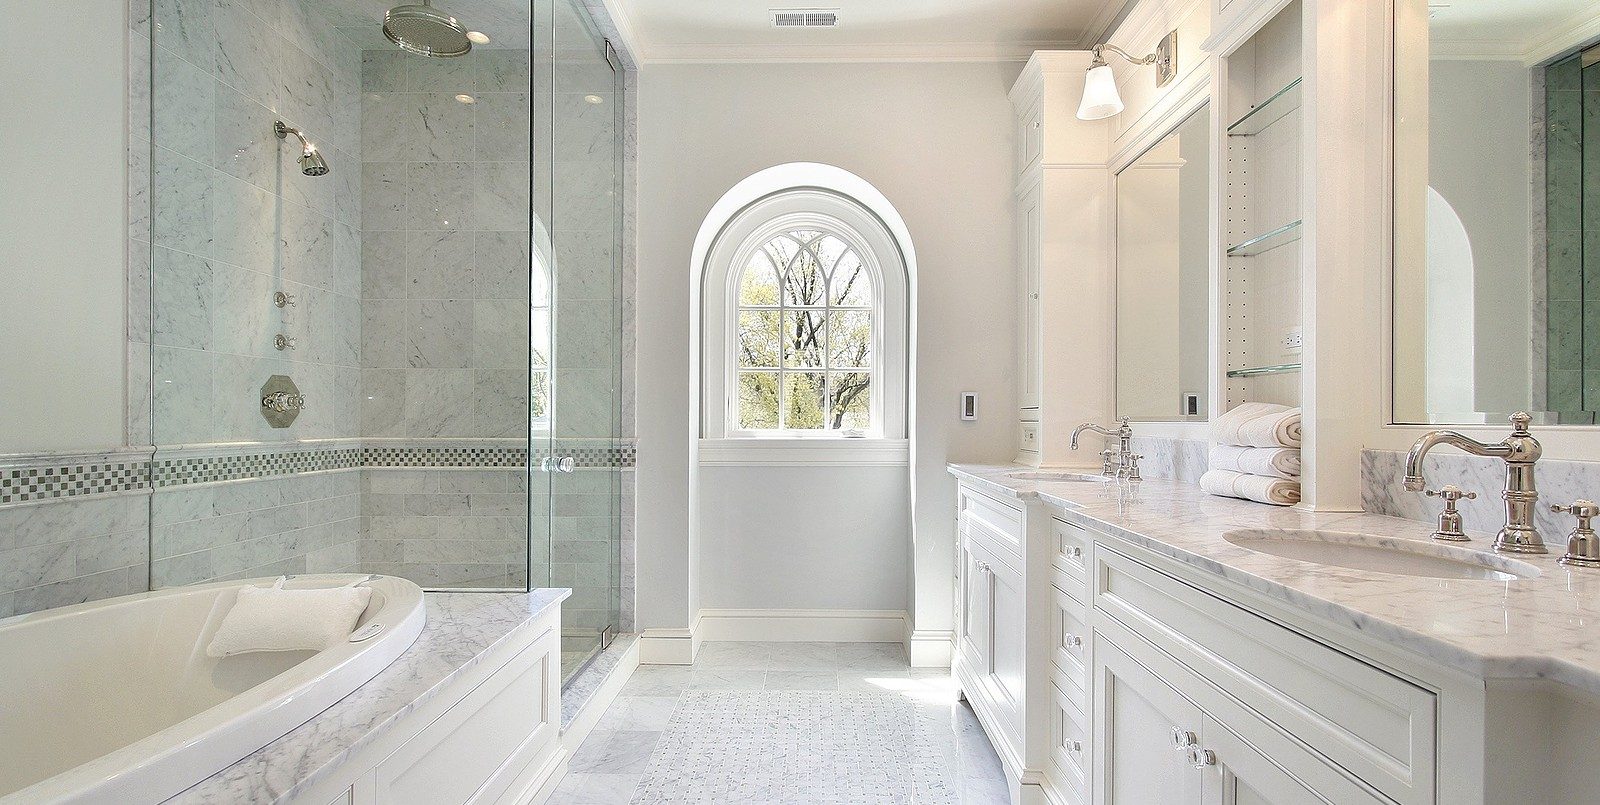 How to design a luxurious master bathroom for Small luxury bathrooms ideas